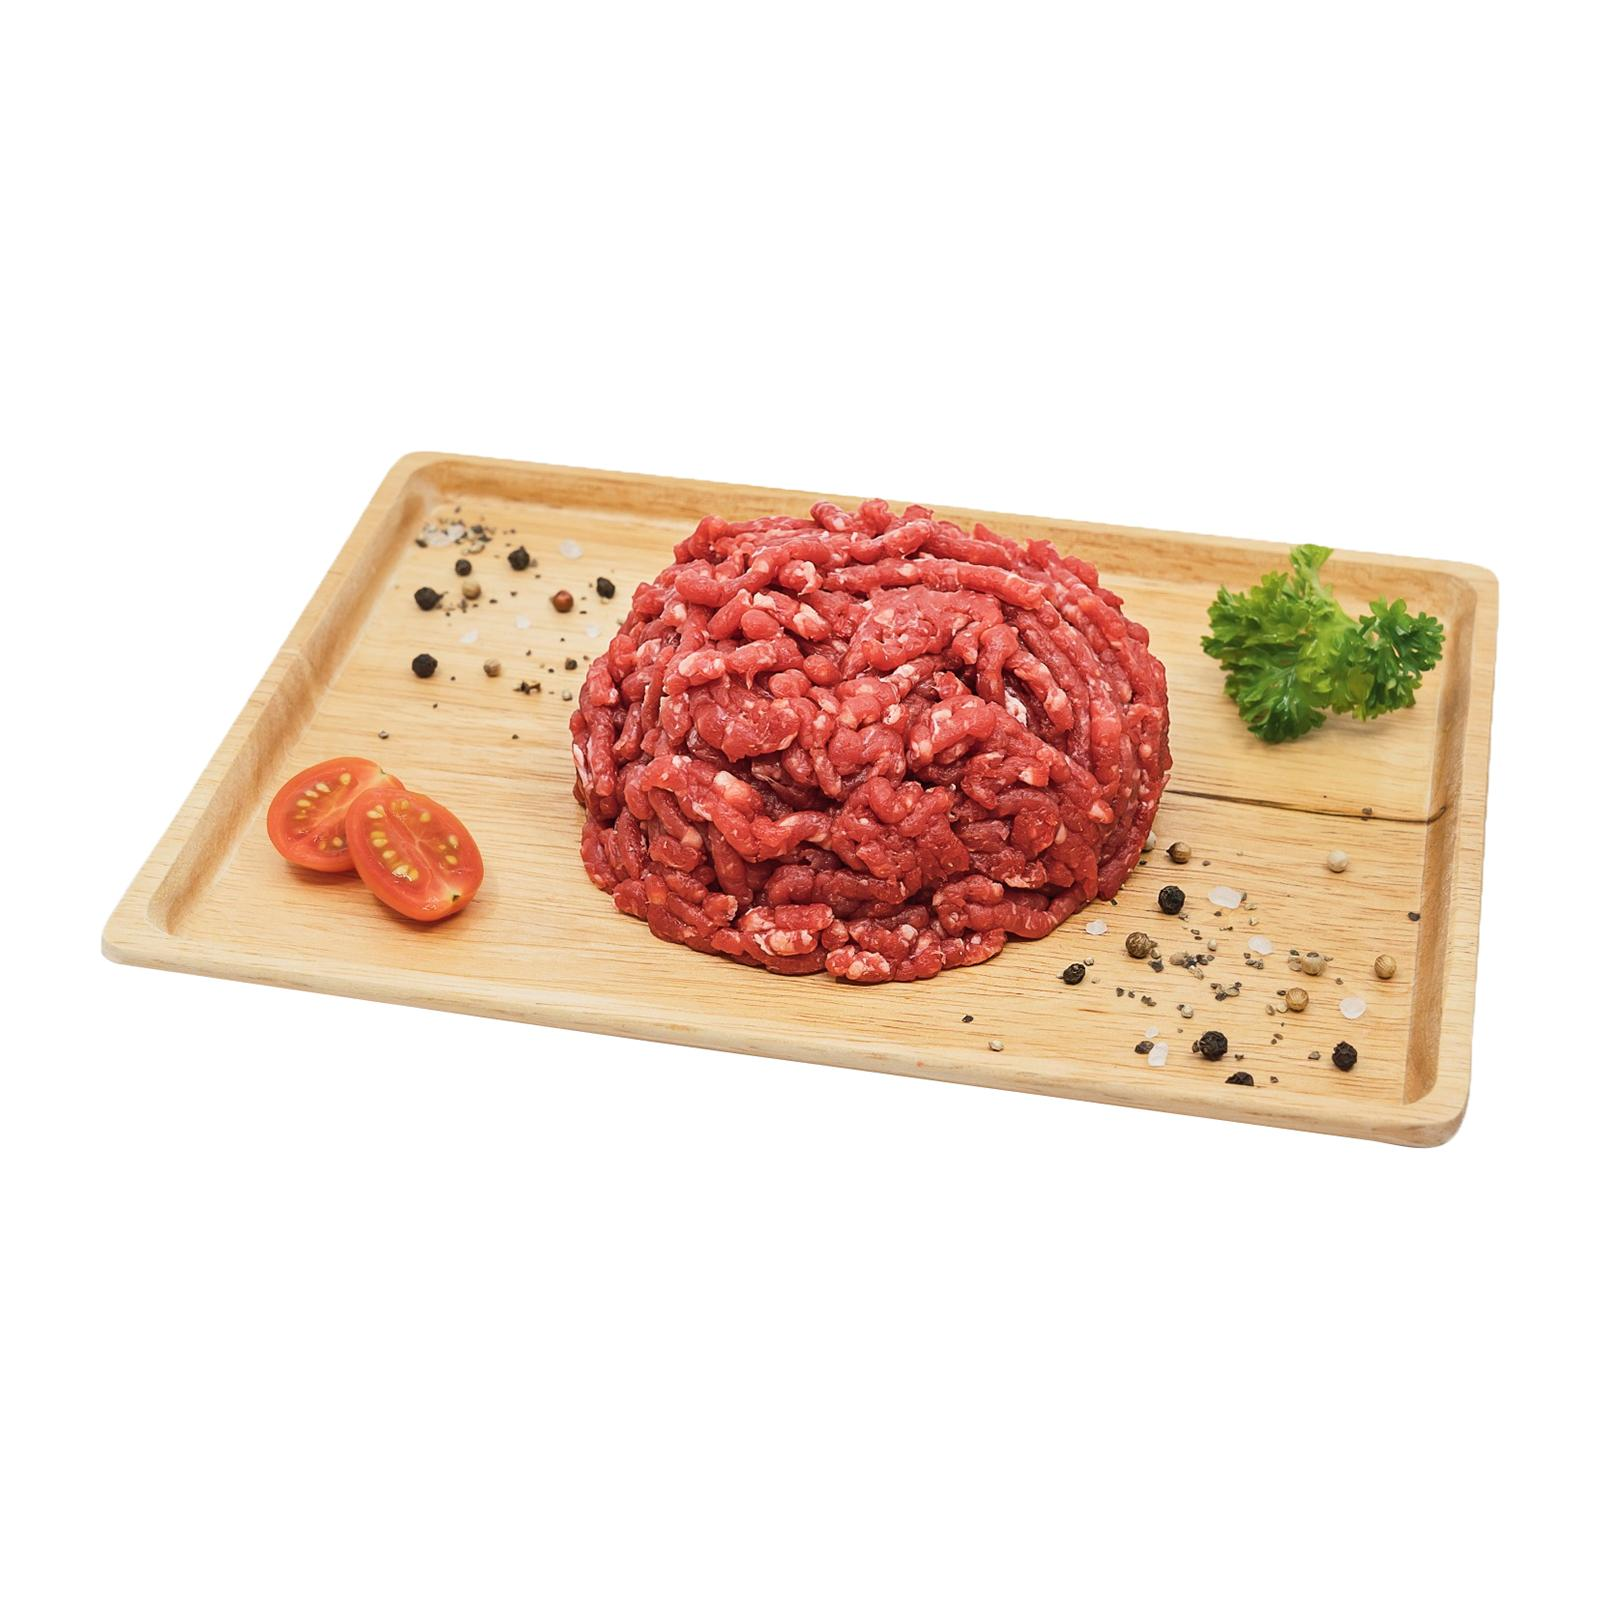 The Gourmet's Pack Grain Fed Minced Beef - Australia